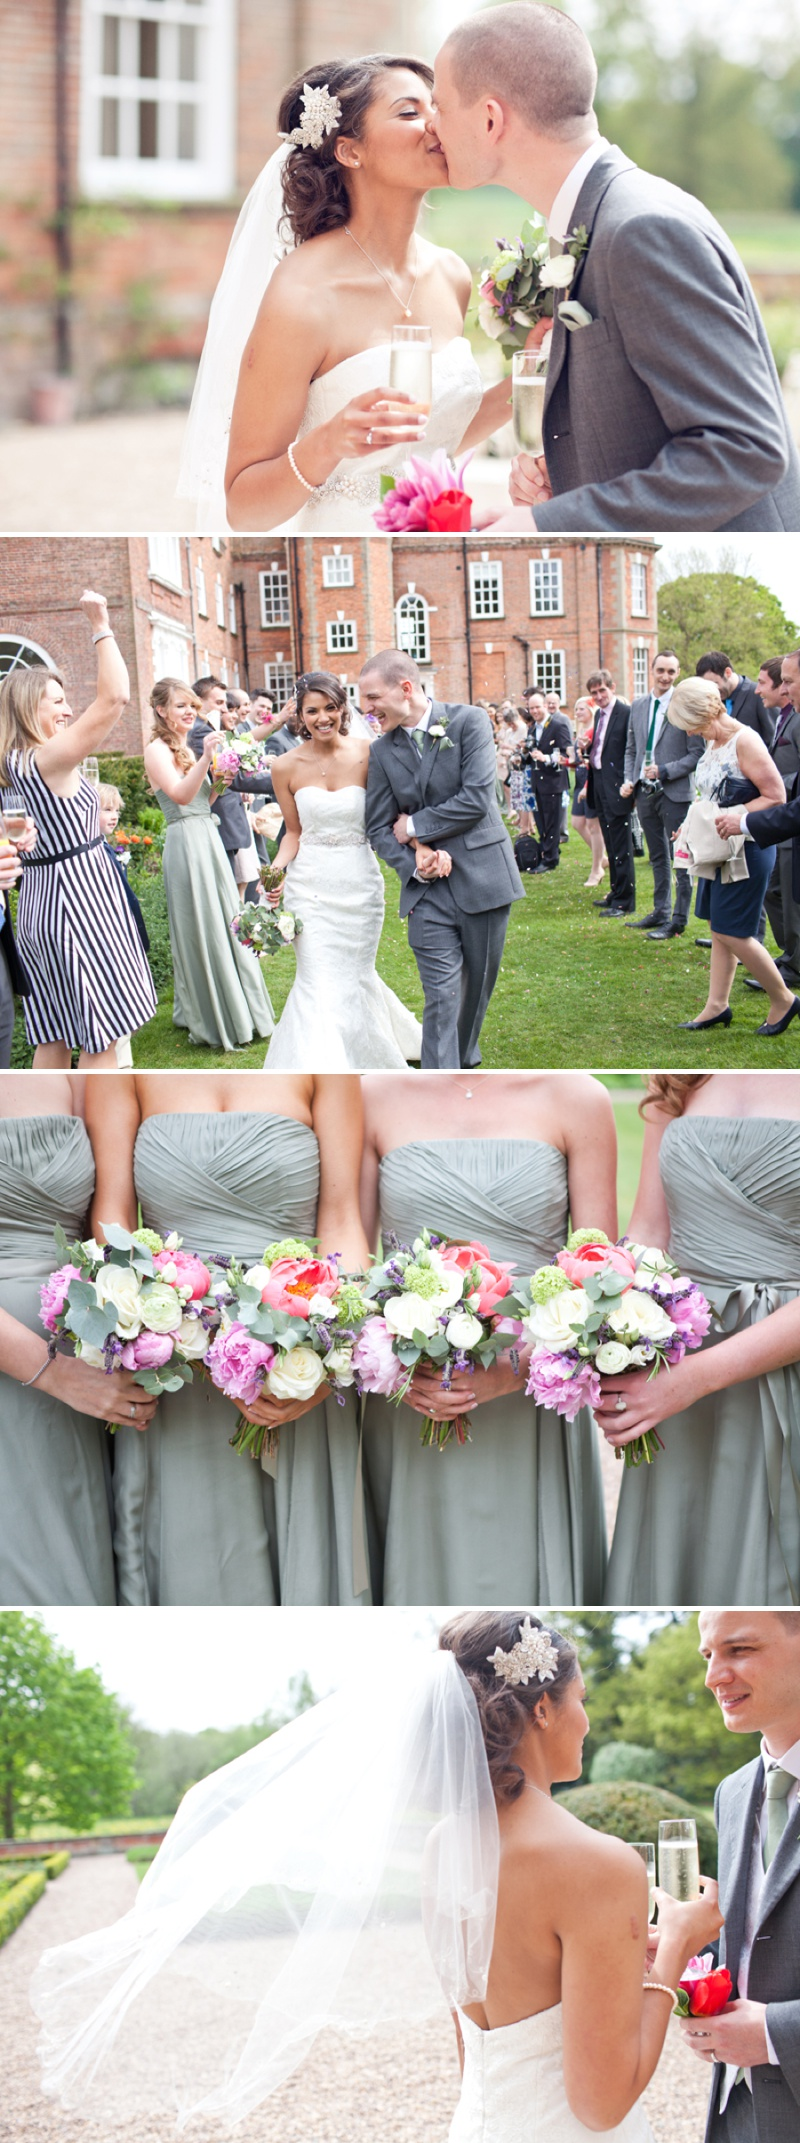 An Elegant English Country Wedding At Iscoyd Park With A Lace Fishtail Wedding Dress By Claire Mischevani and Sage Green Coast Bridesmaid Dresses With A Pink Peony Bouquet._0006